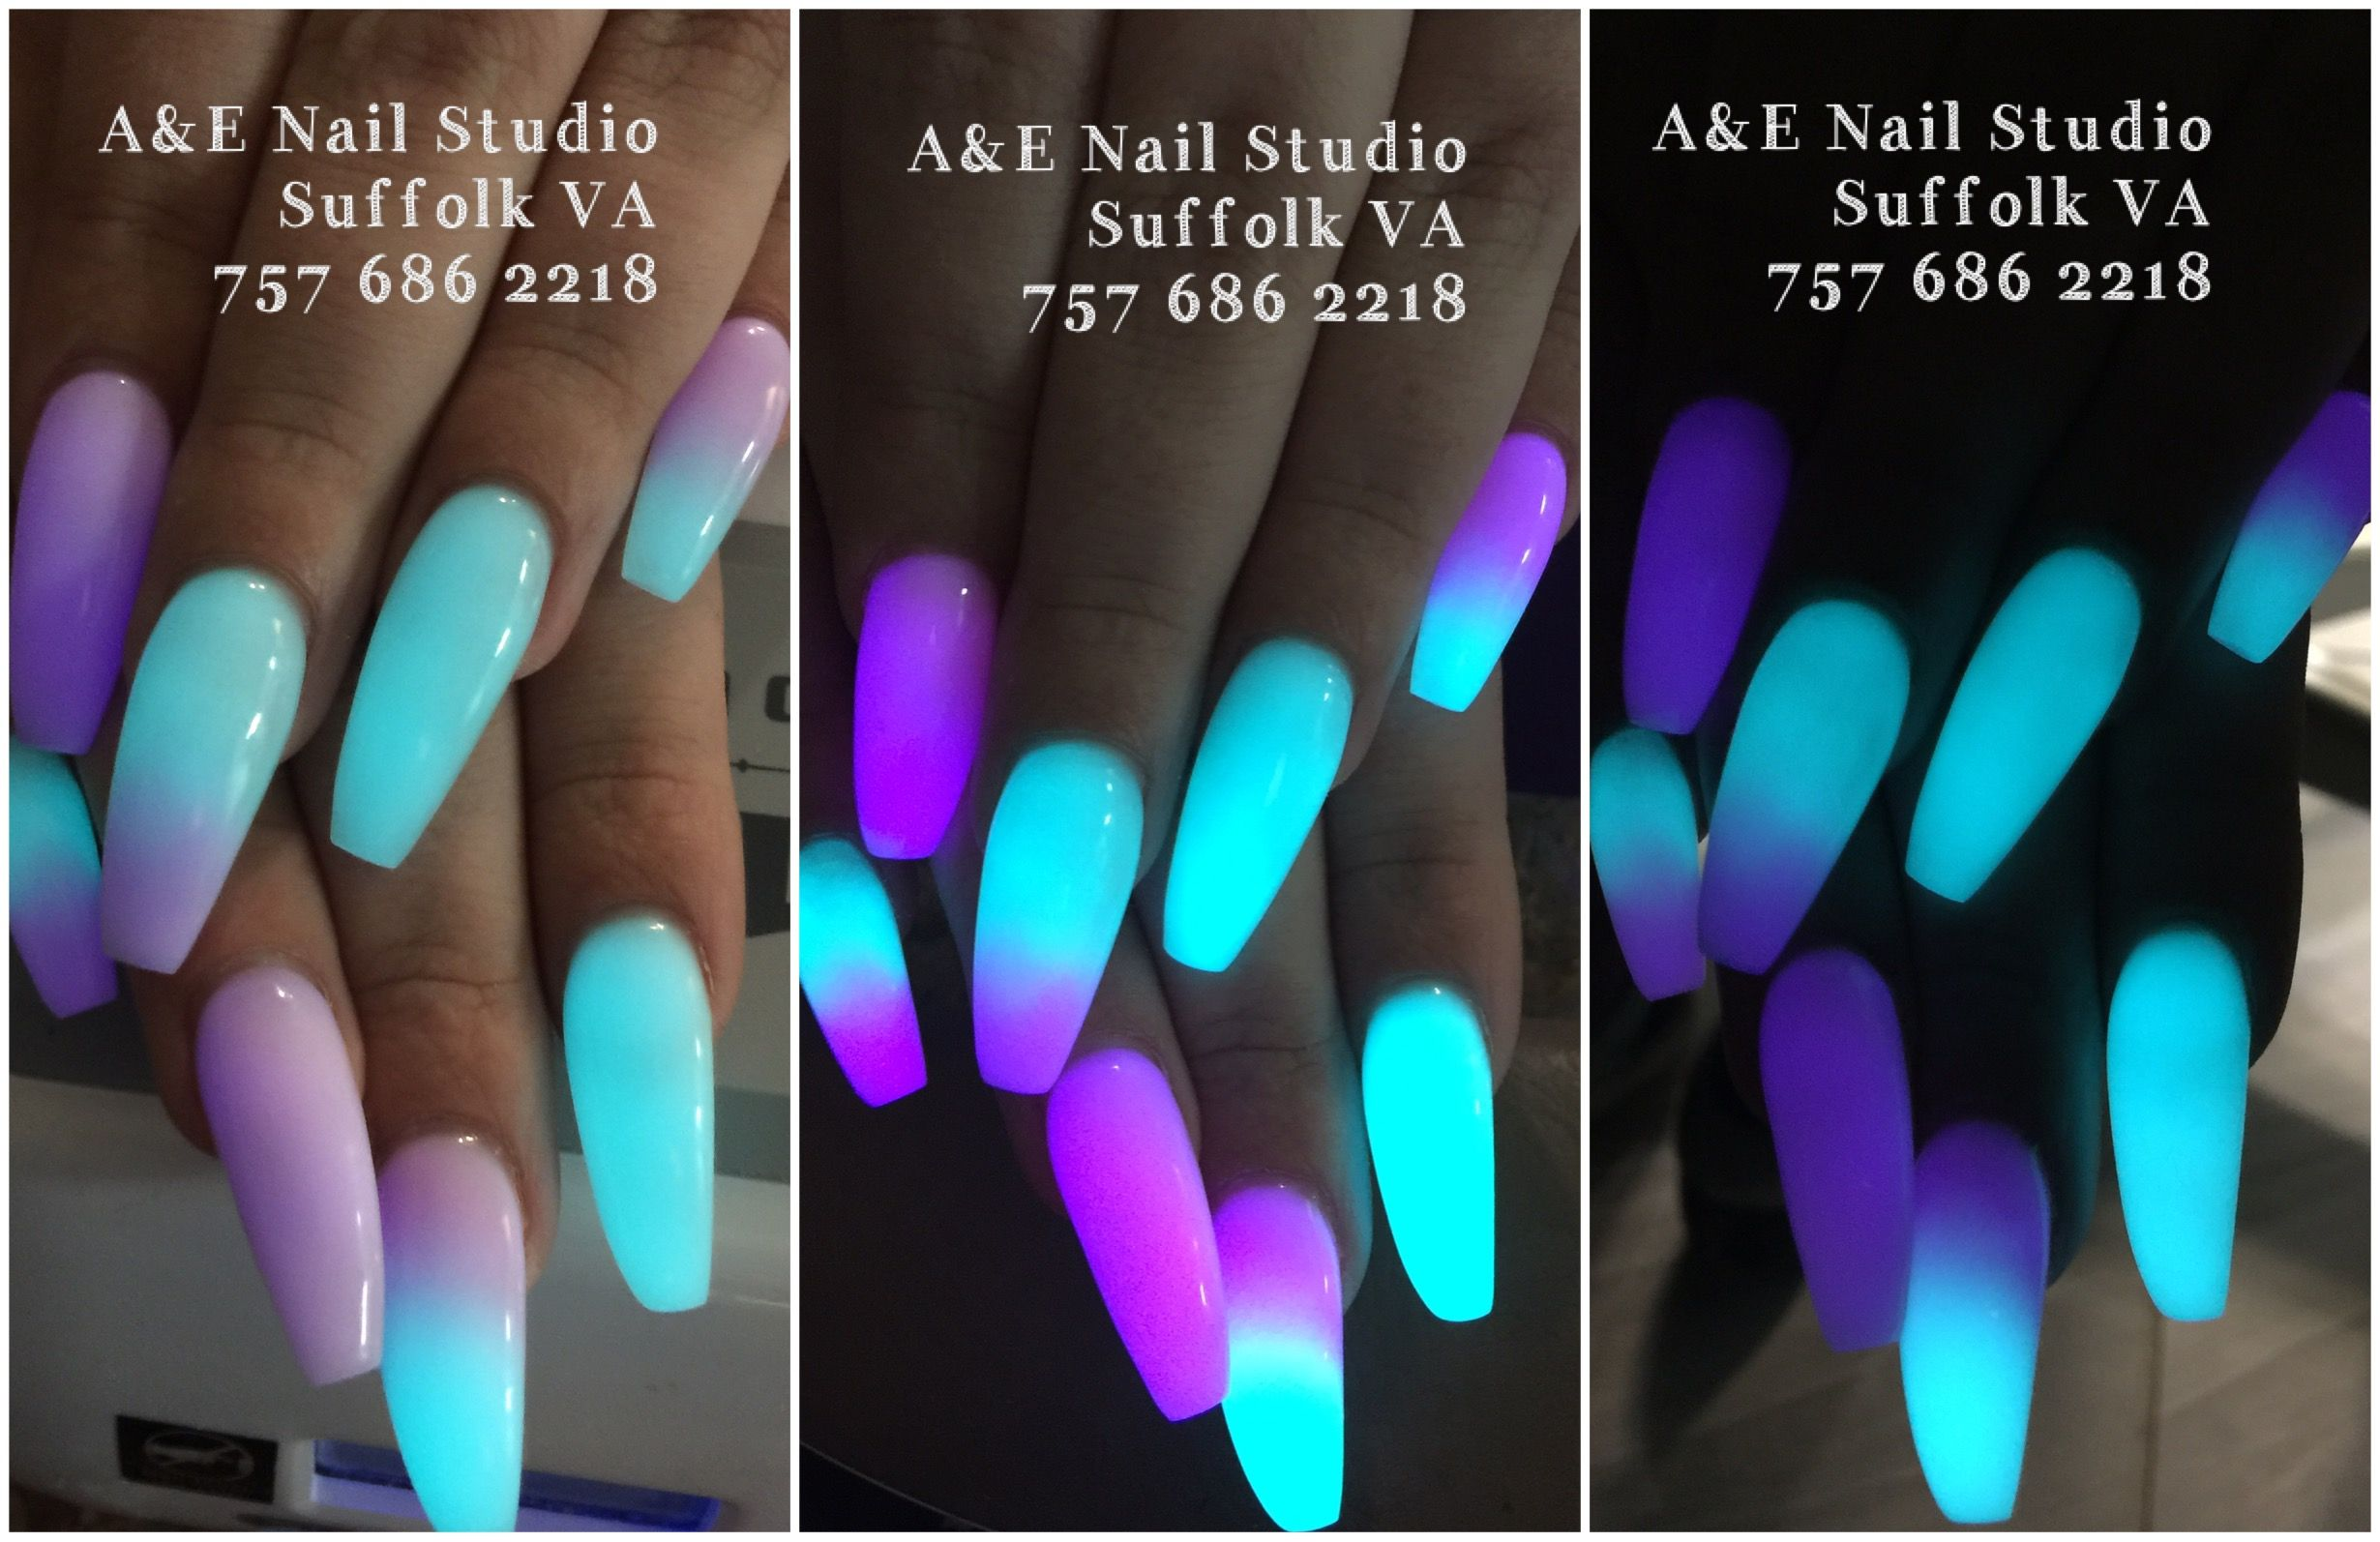 Glow in the dark nails powder. Fuchsia and Aqua ombré nails